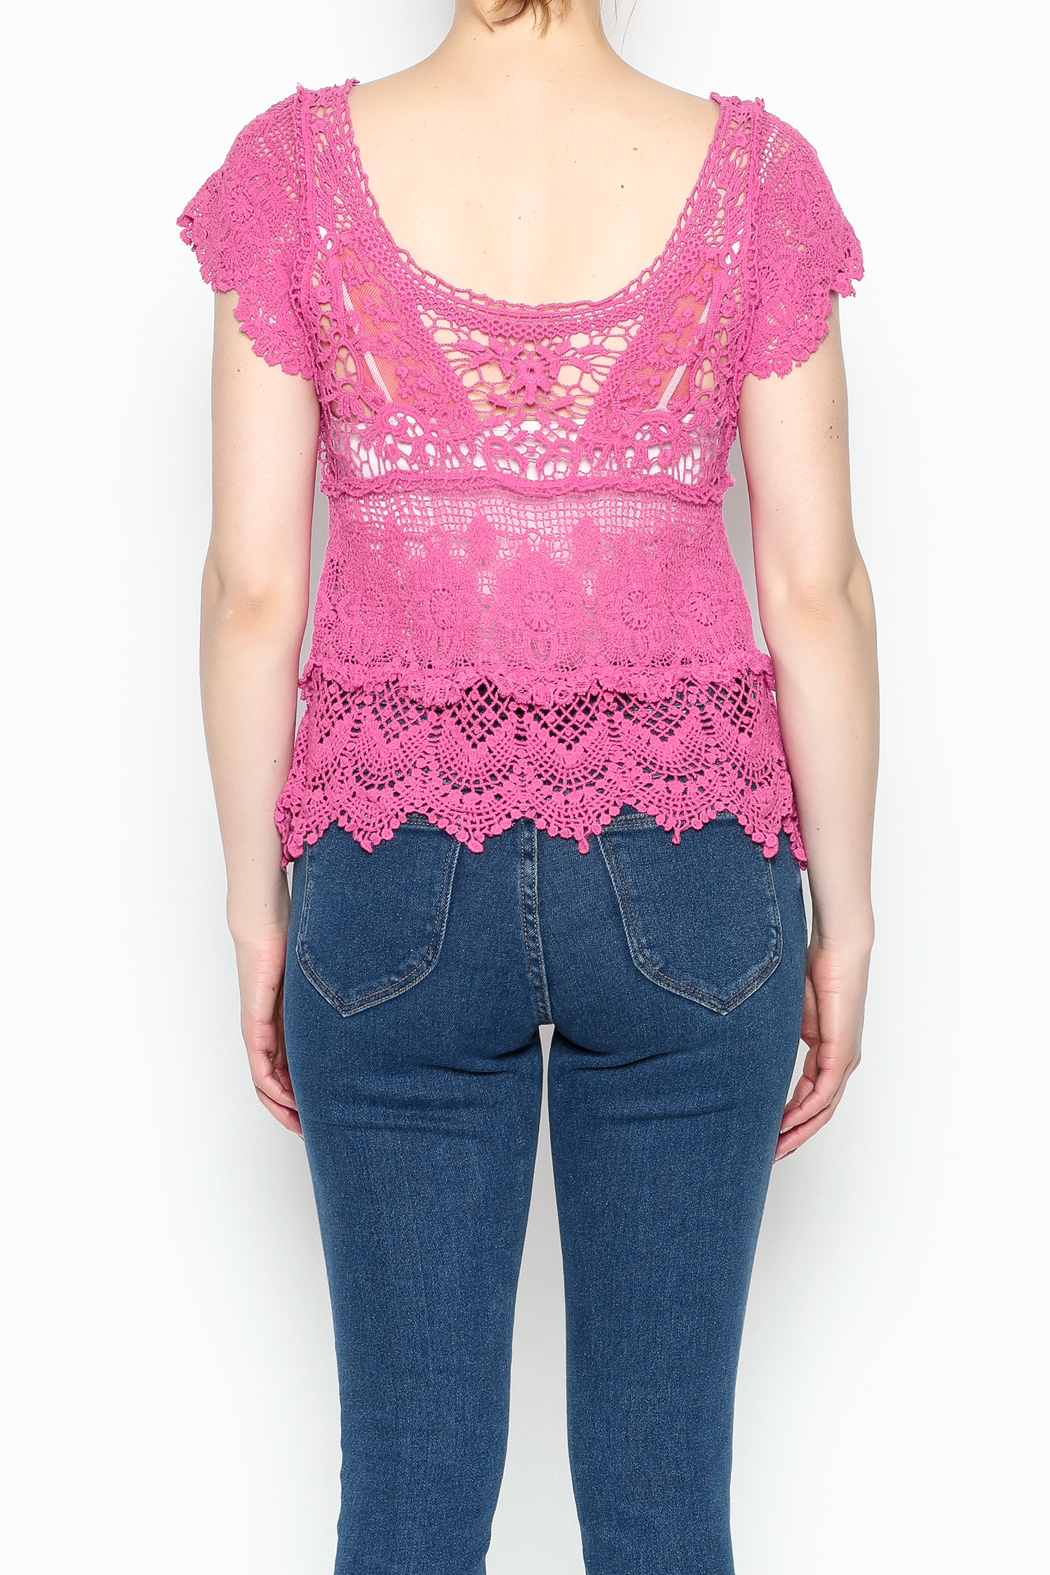 Made on Earth Lace Top - Back Cropped Image